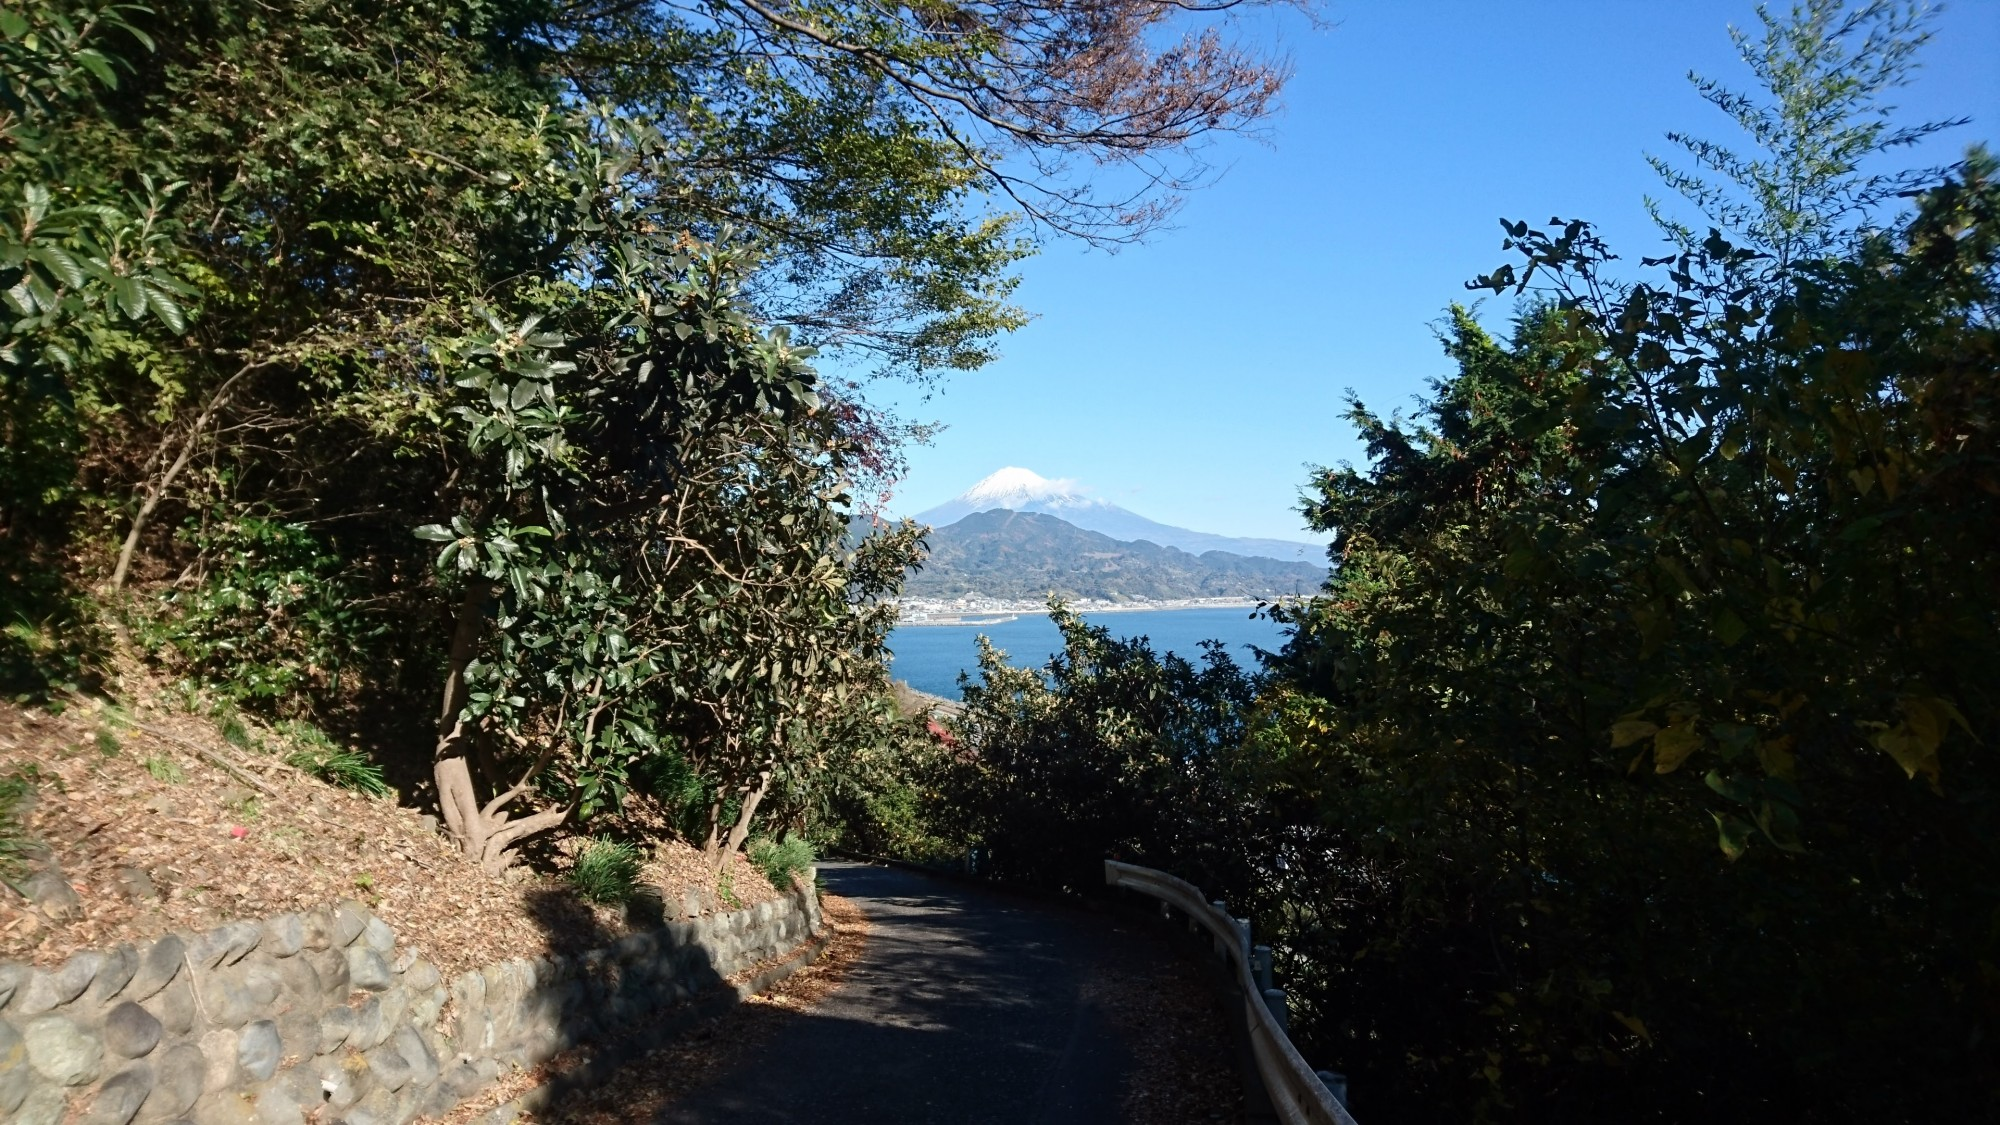 Tokaido_Trail_View_of_Mt._Fuji_01.JPG